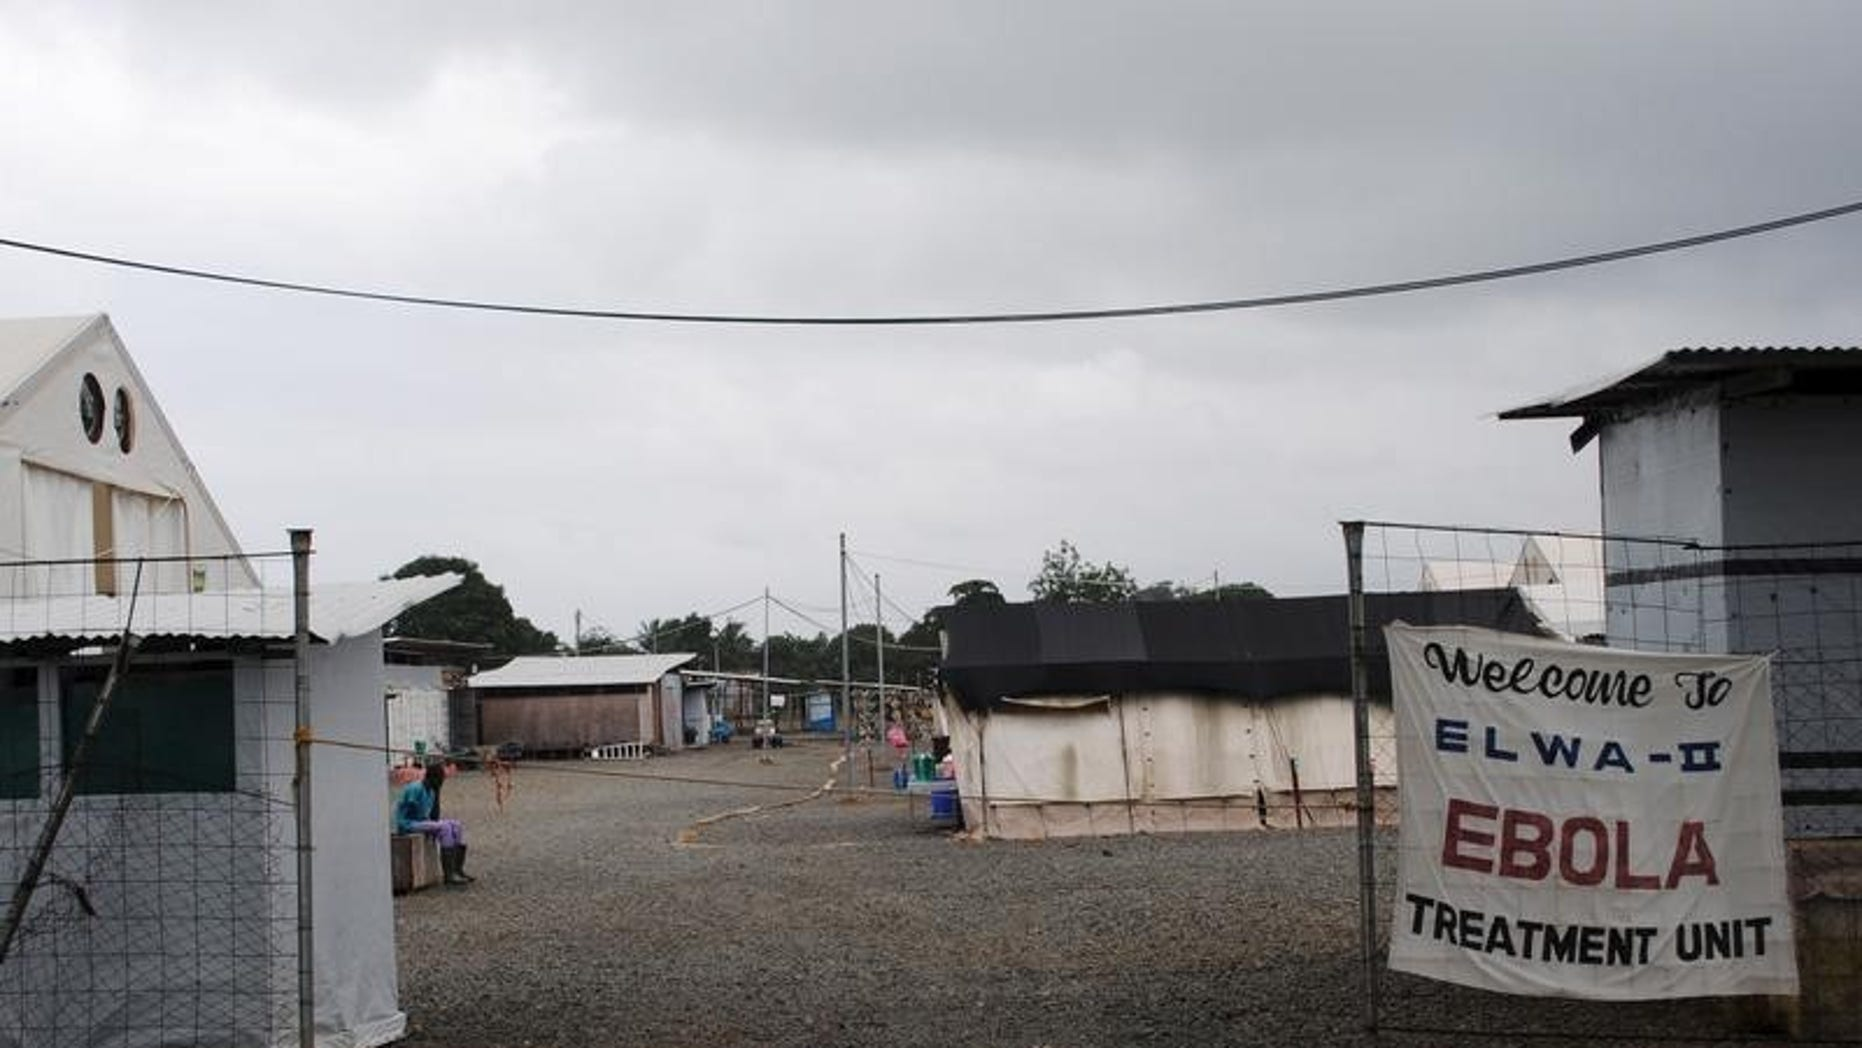 The Ebola virus treatment center where four people are currently being treated is seen in Paynesville, Liberia, July 16, 2015. REUTERS/James Giahyue